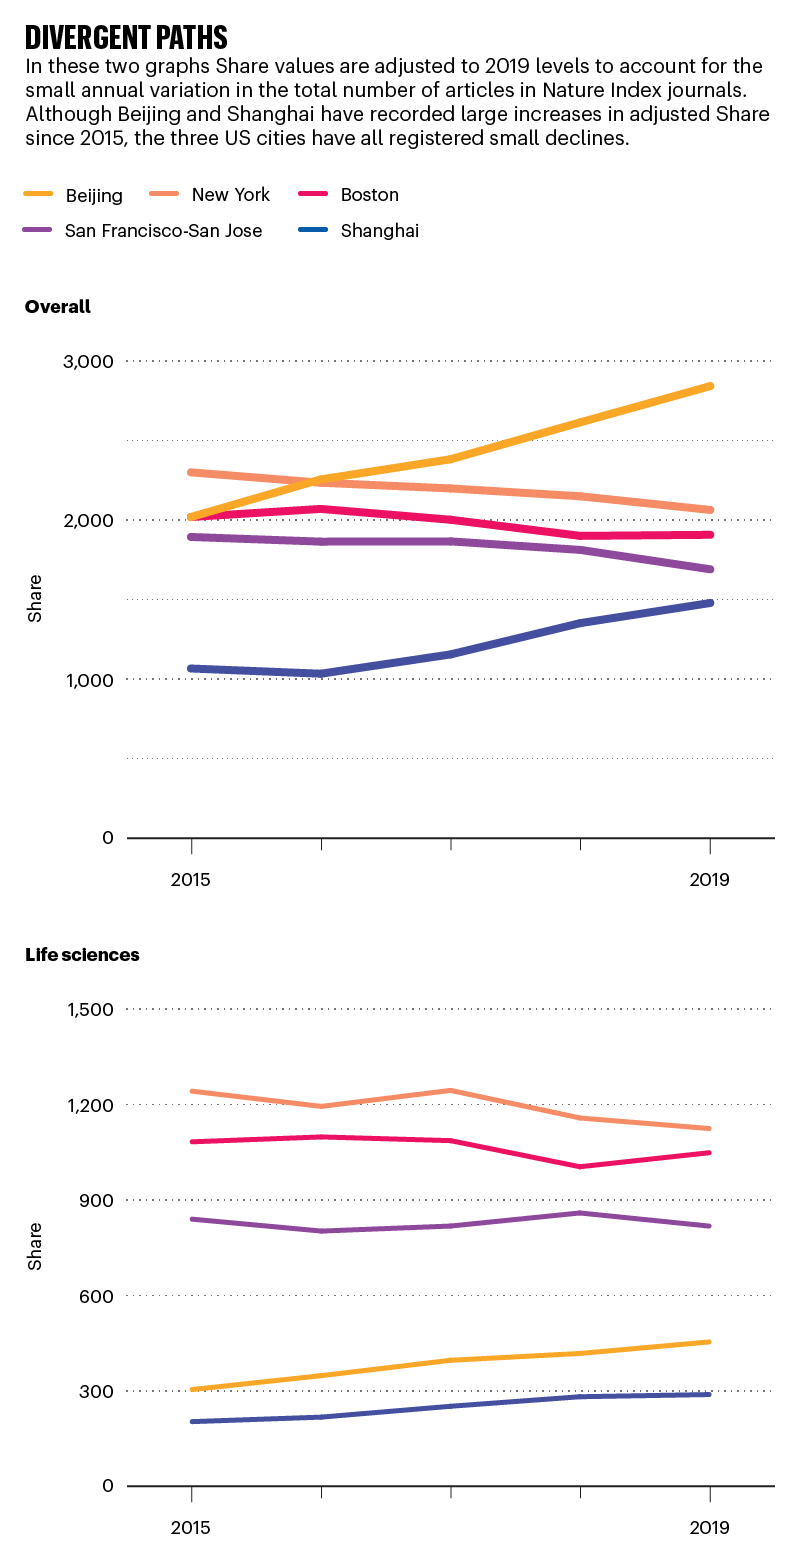 Divergent paths: line graphs comparing share overall and in life sciencs for the top 5 cities